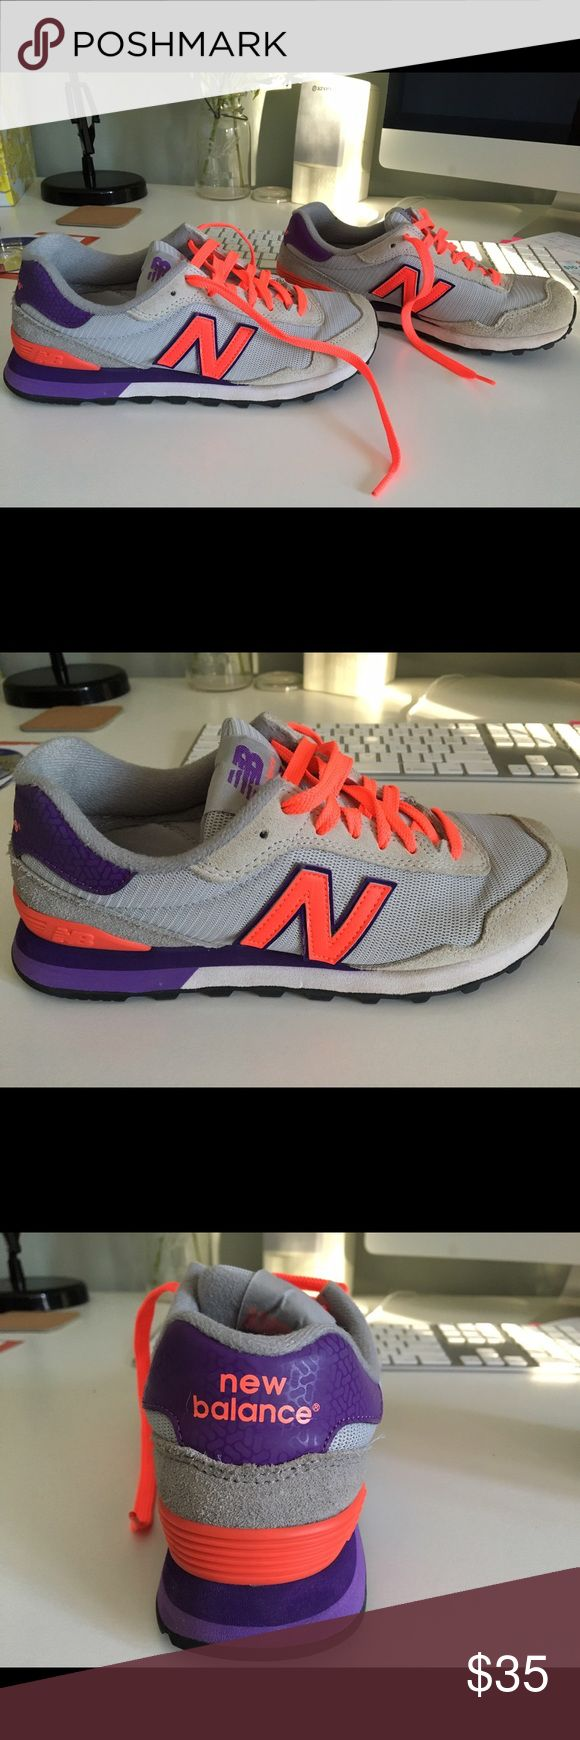 New Balance Tennis Shoes Perfect condition New Balance tennis shoes: Women's Size 7.5 - barely worn. Smoke free home. New Balance Shoes Athletic Shoes